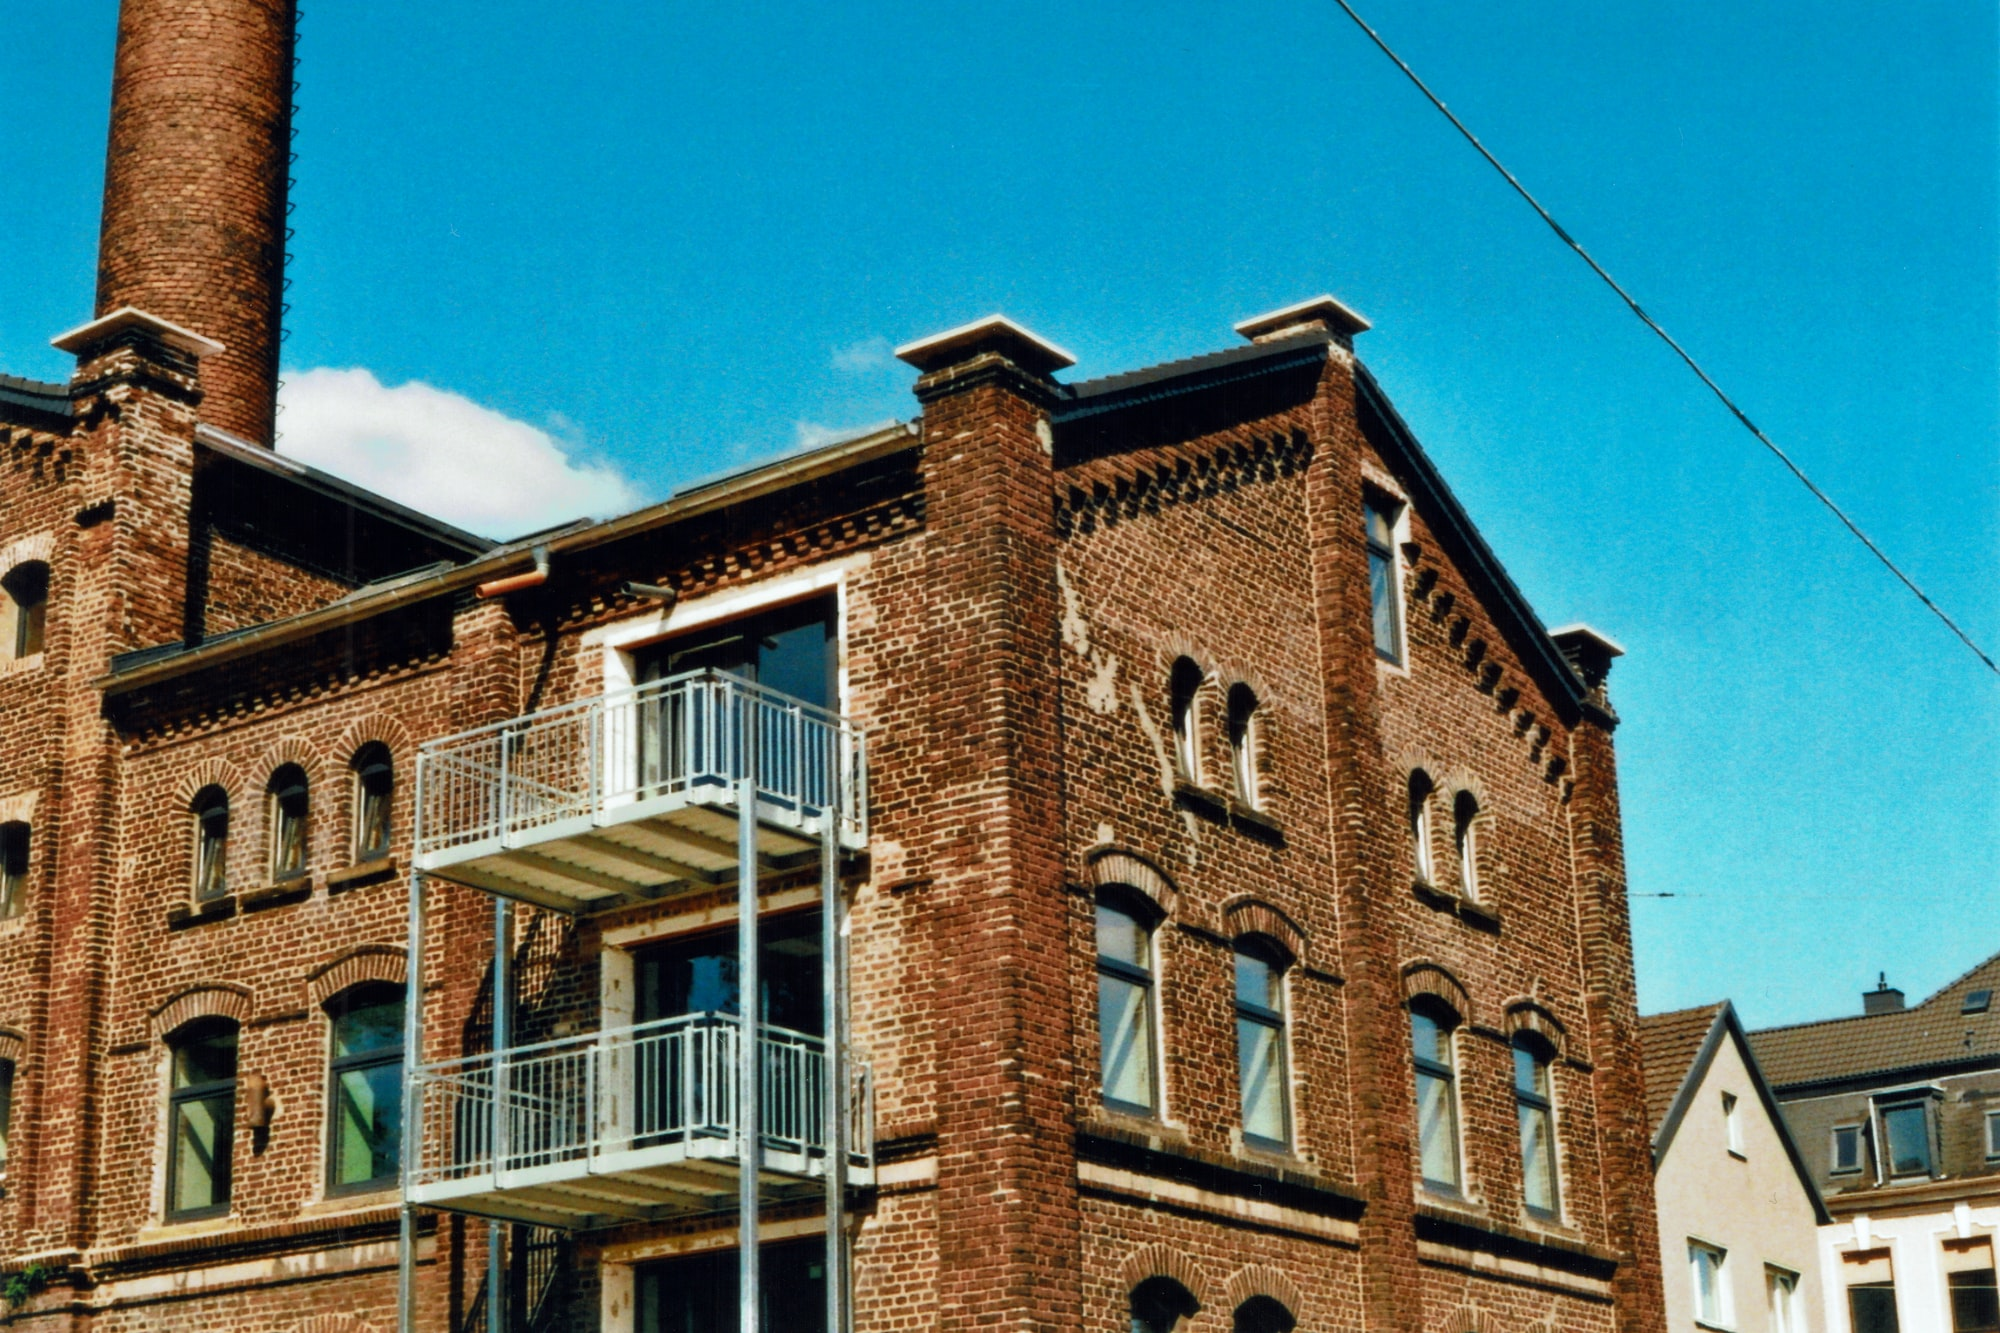 An old brick factory building is turned into loft appartments. (A)